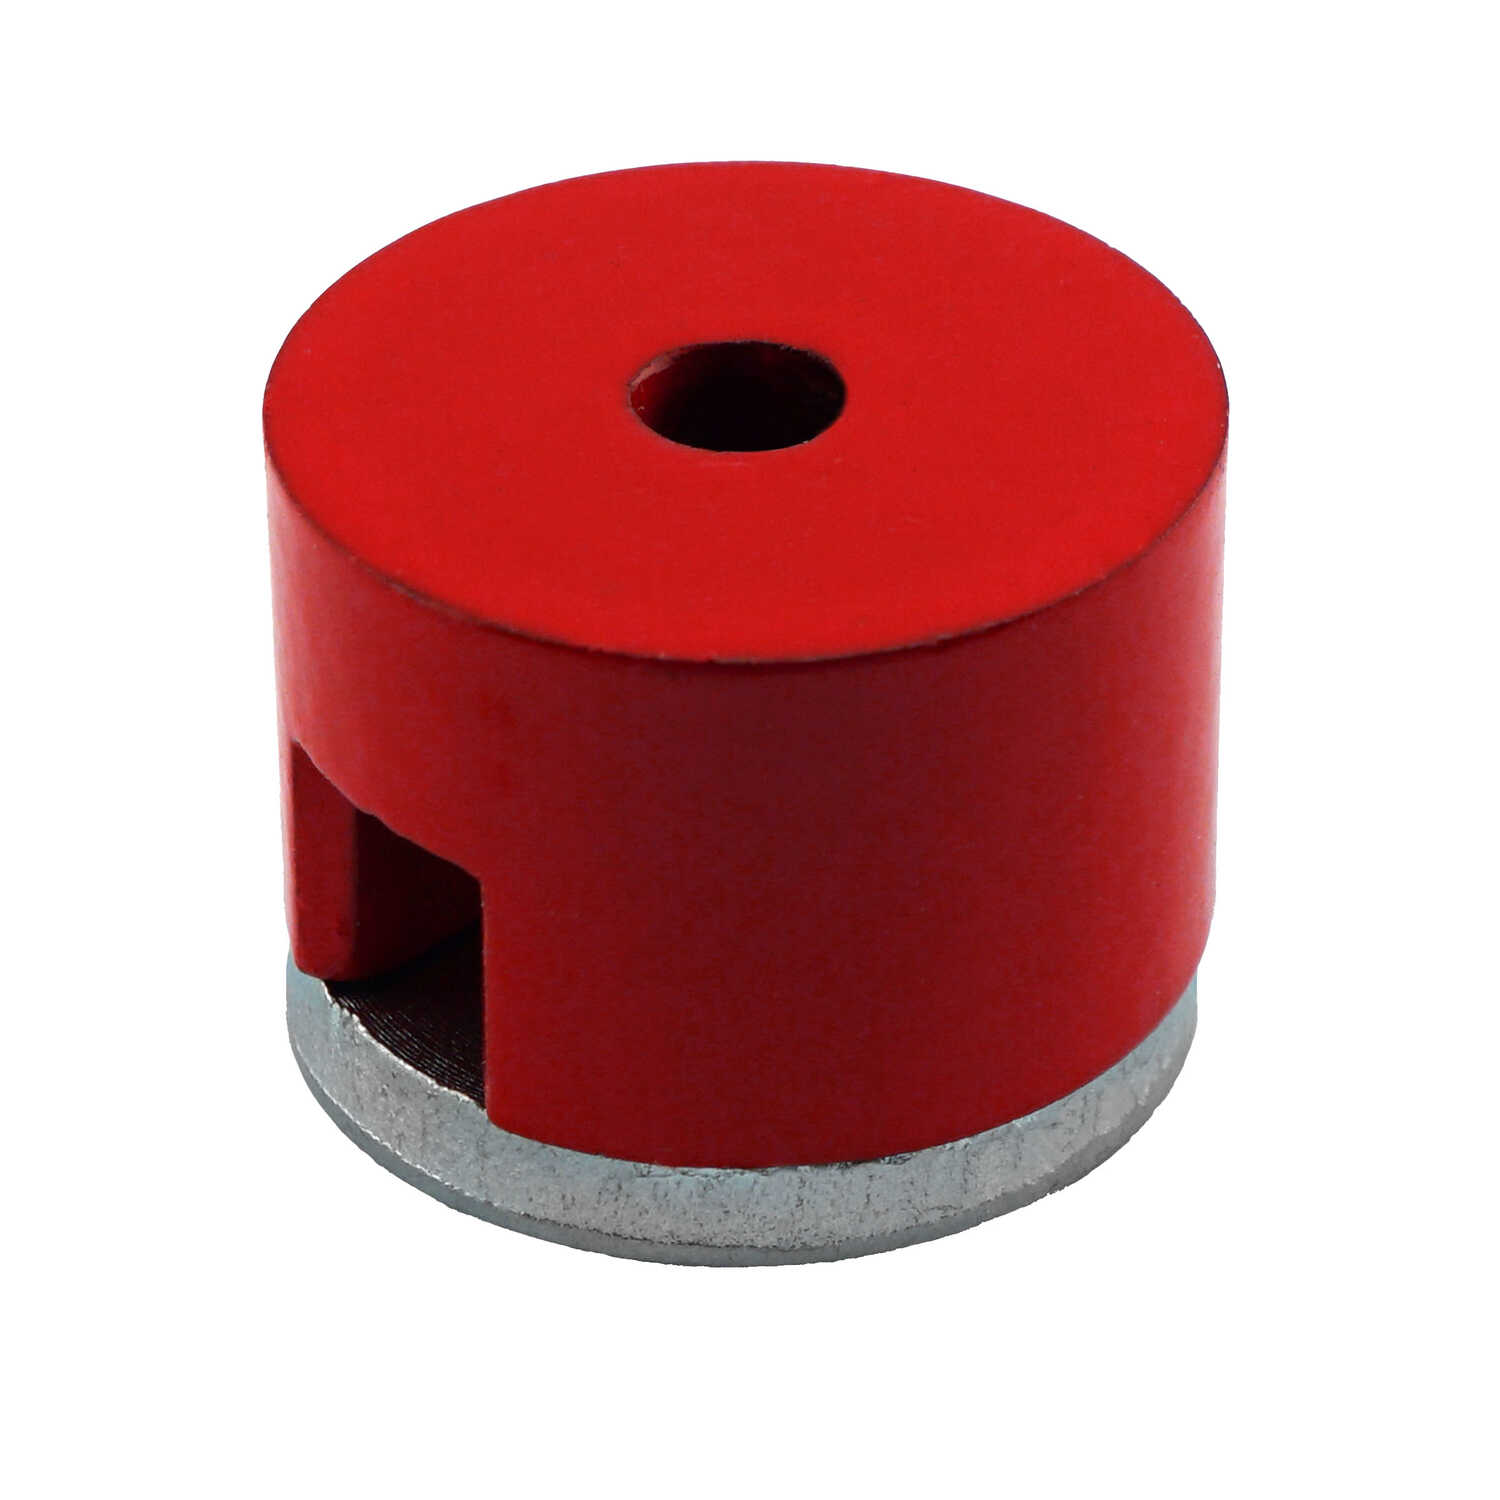 Master Magnetics  1 in. Alnico  Work Holding Magnet  6 lb. pull 5.5 MGOe Red  1 pc.